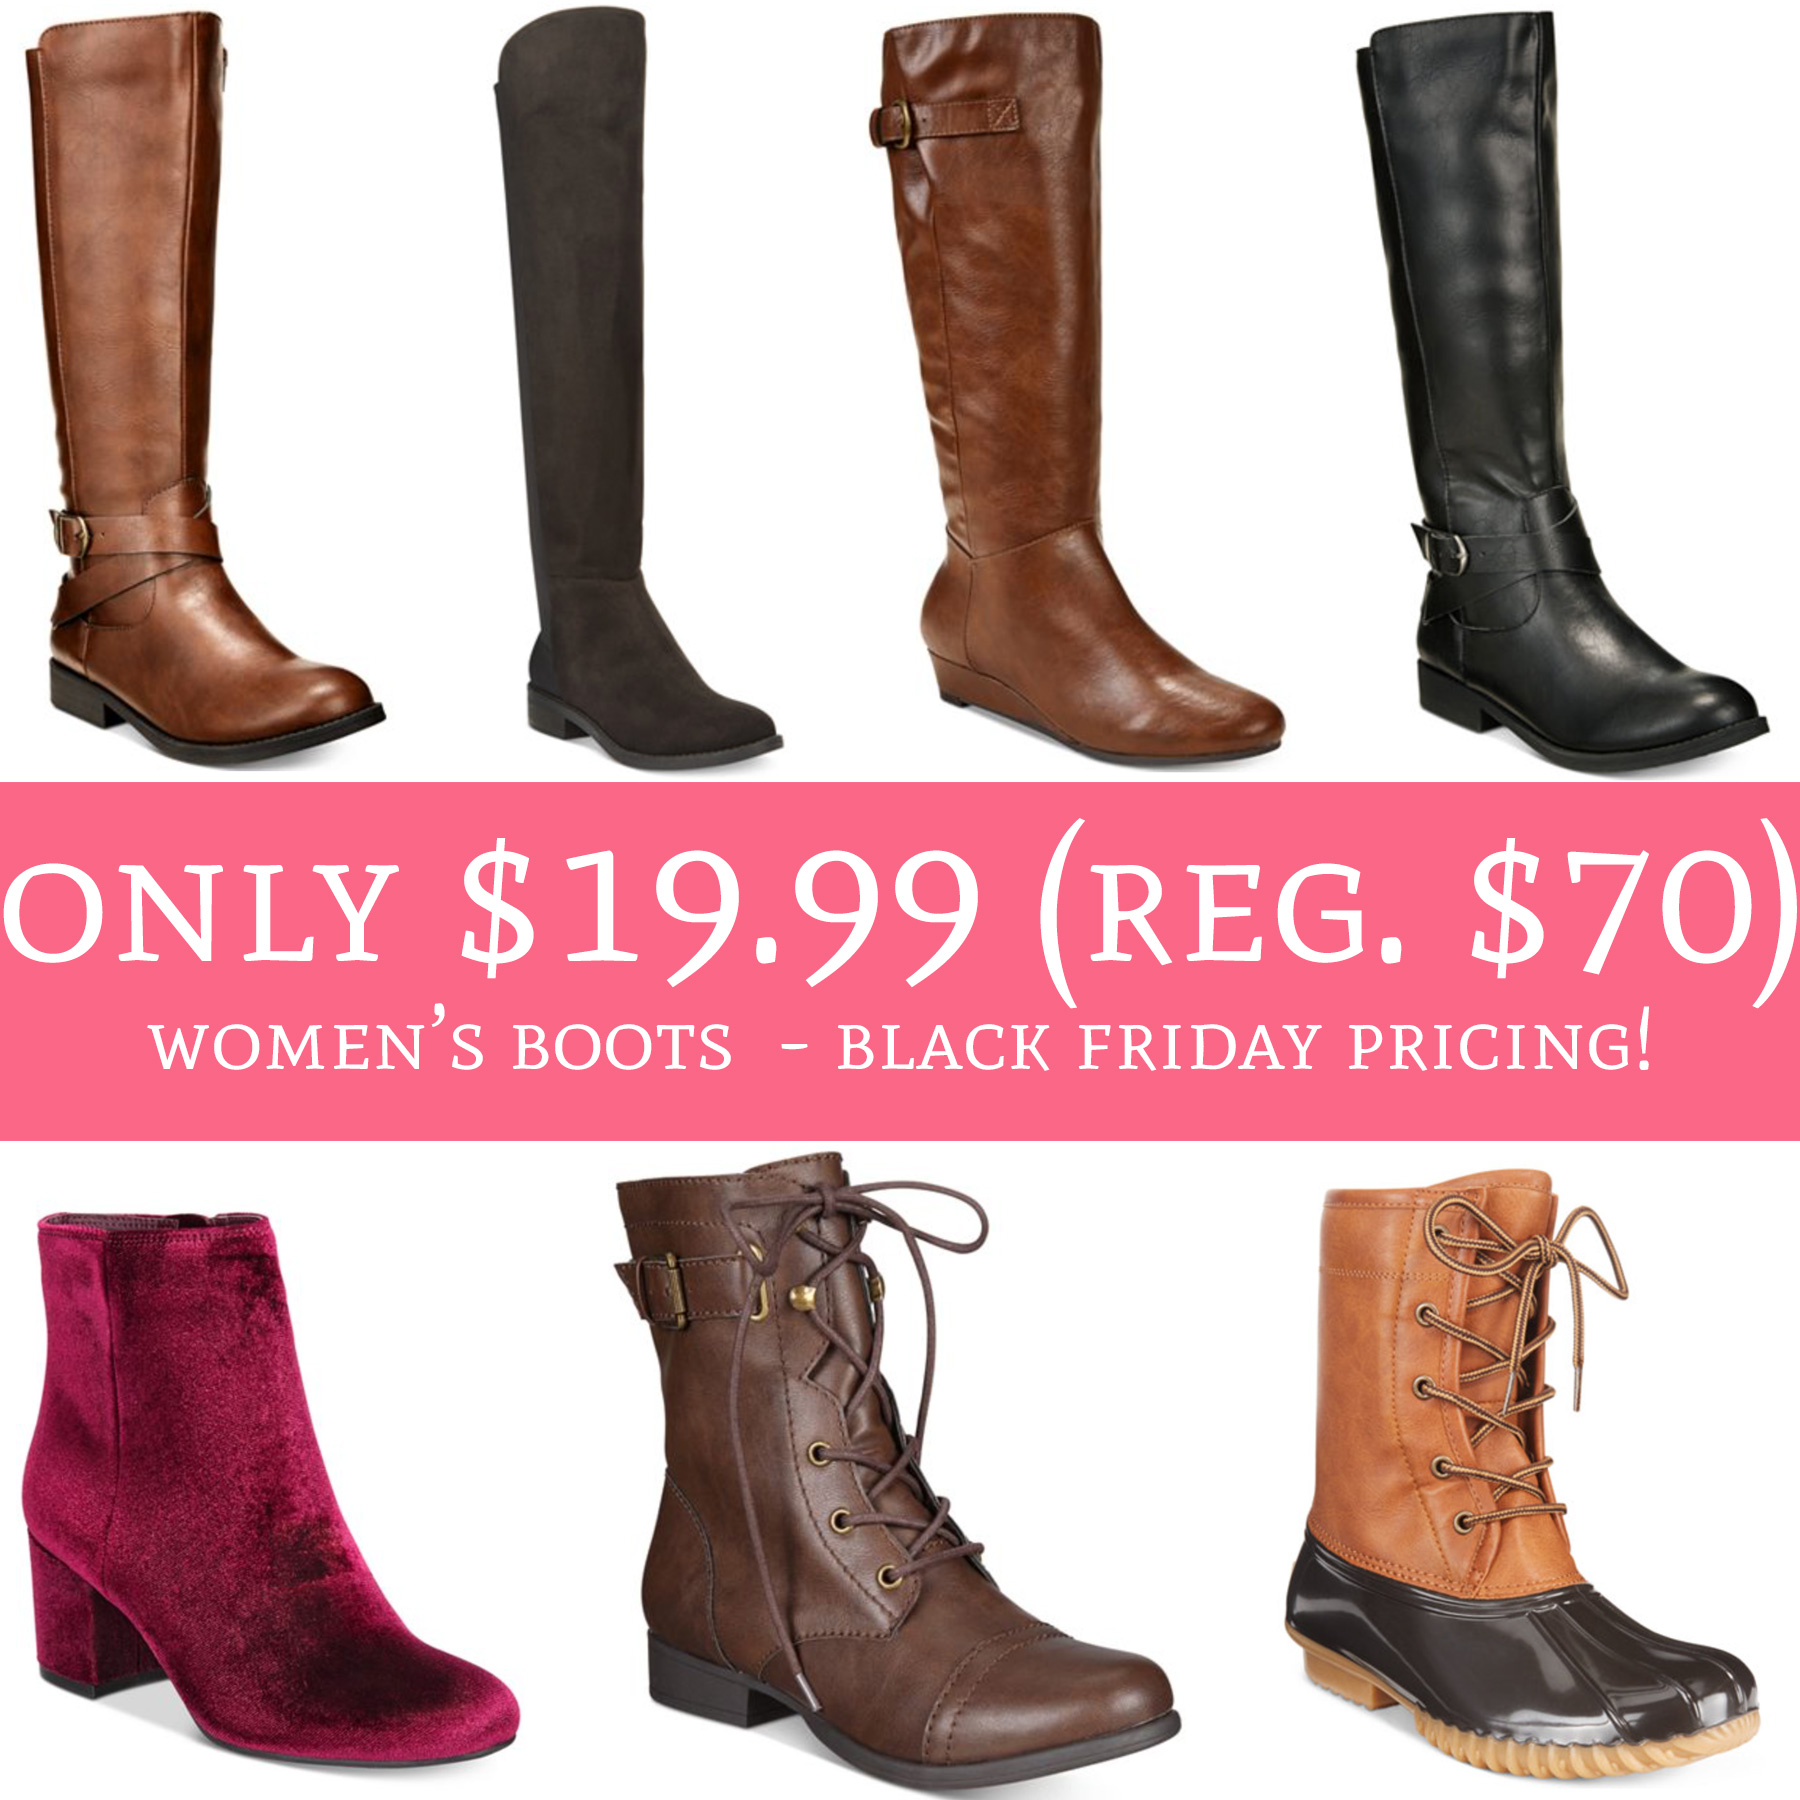 78a6a20f48b Black Friday Pricing! Only $19.99 (Regular $70) Women's Boots - Deal ...